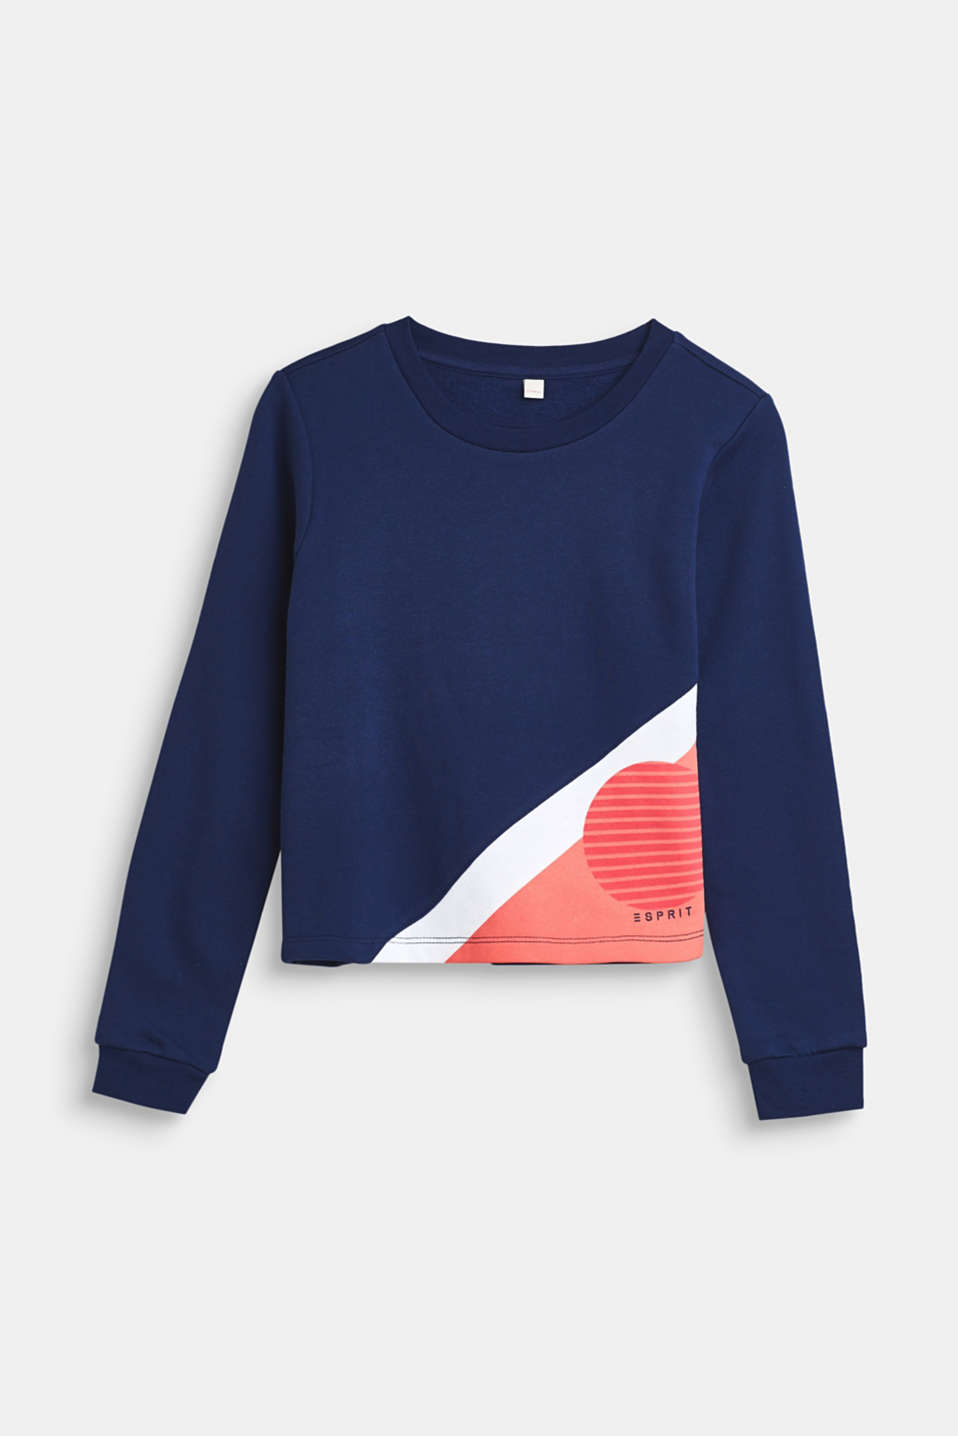 Esprit - Sweatshirt with colour blocks, 100% cotton